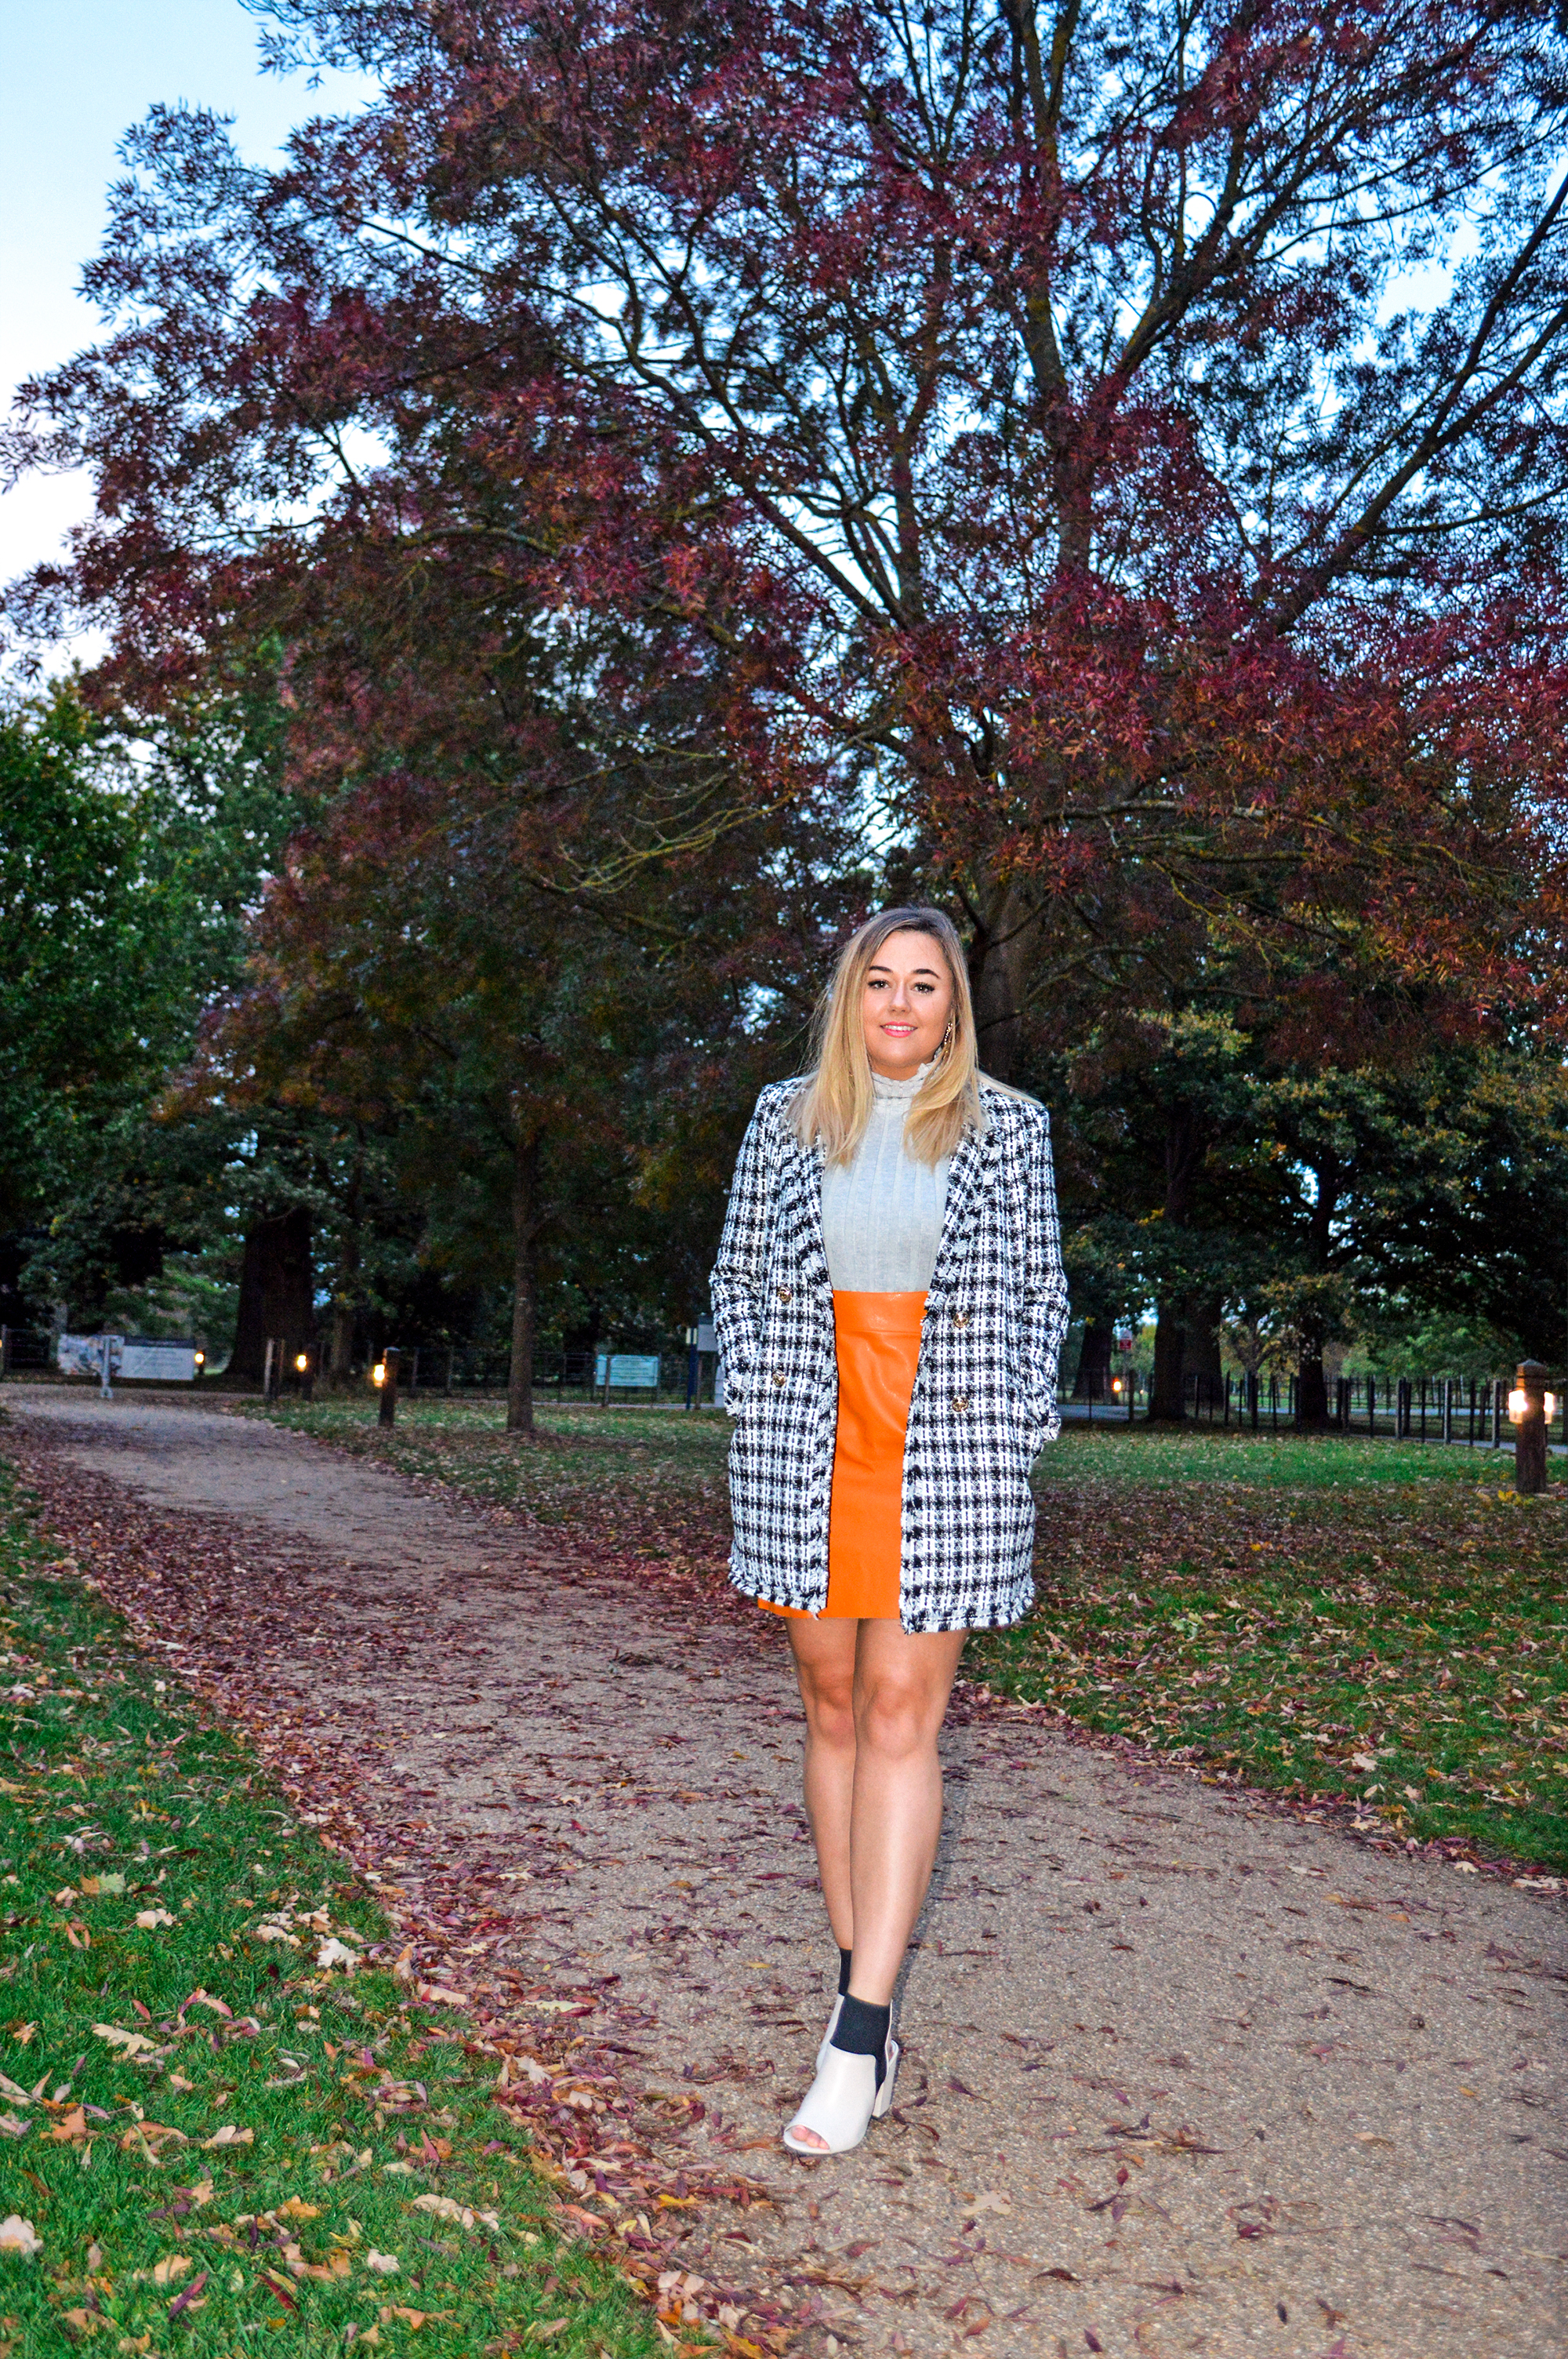 Hannah stands on a pavement surrounded by orange and red leaves and trees. Wearing sleeveless turtleneck grey sweater, faux leather orange skirt, ankle boots and bouclé jacket.